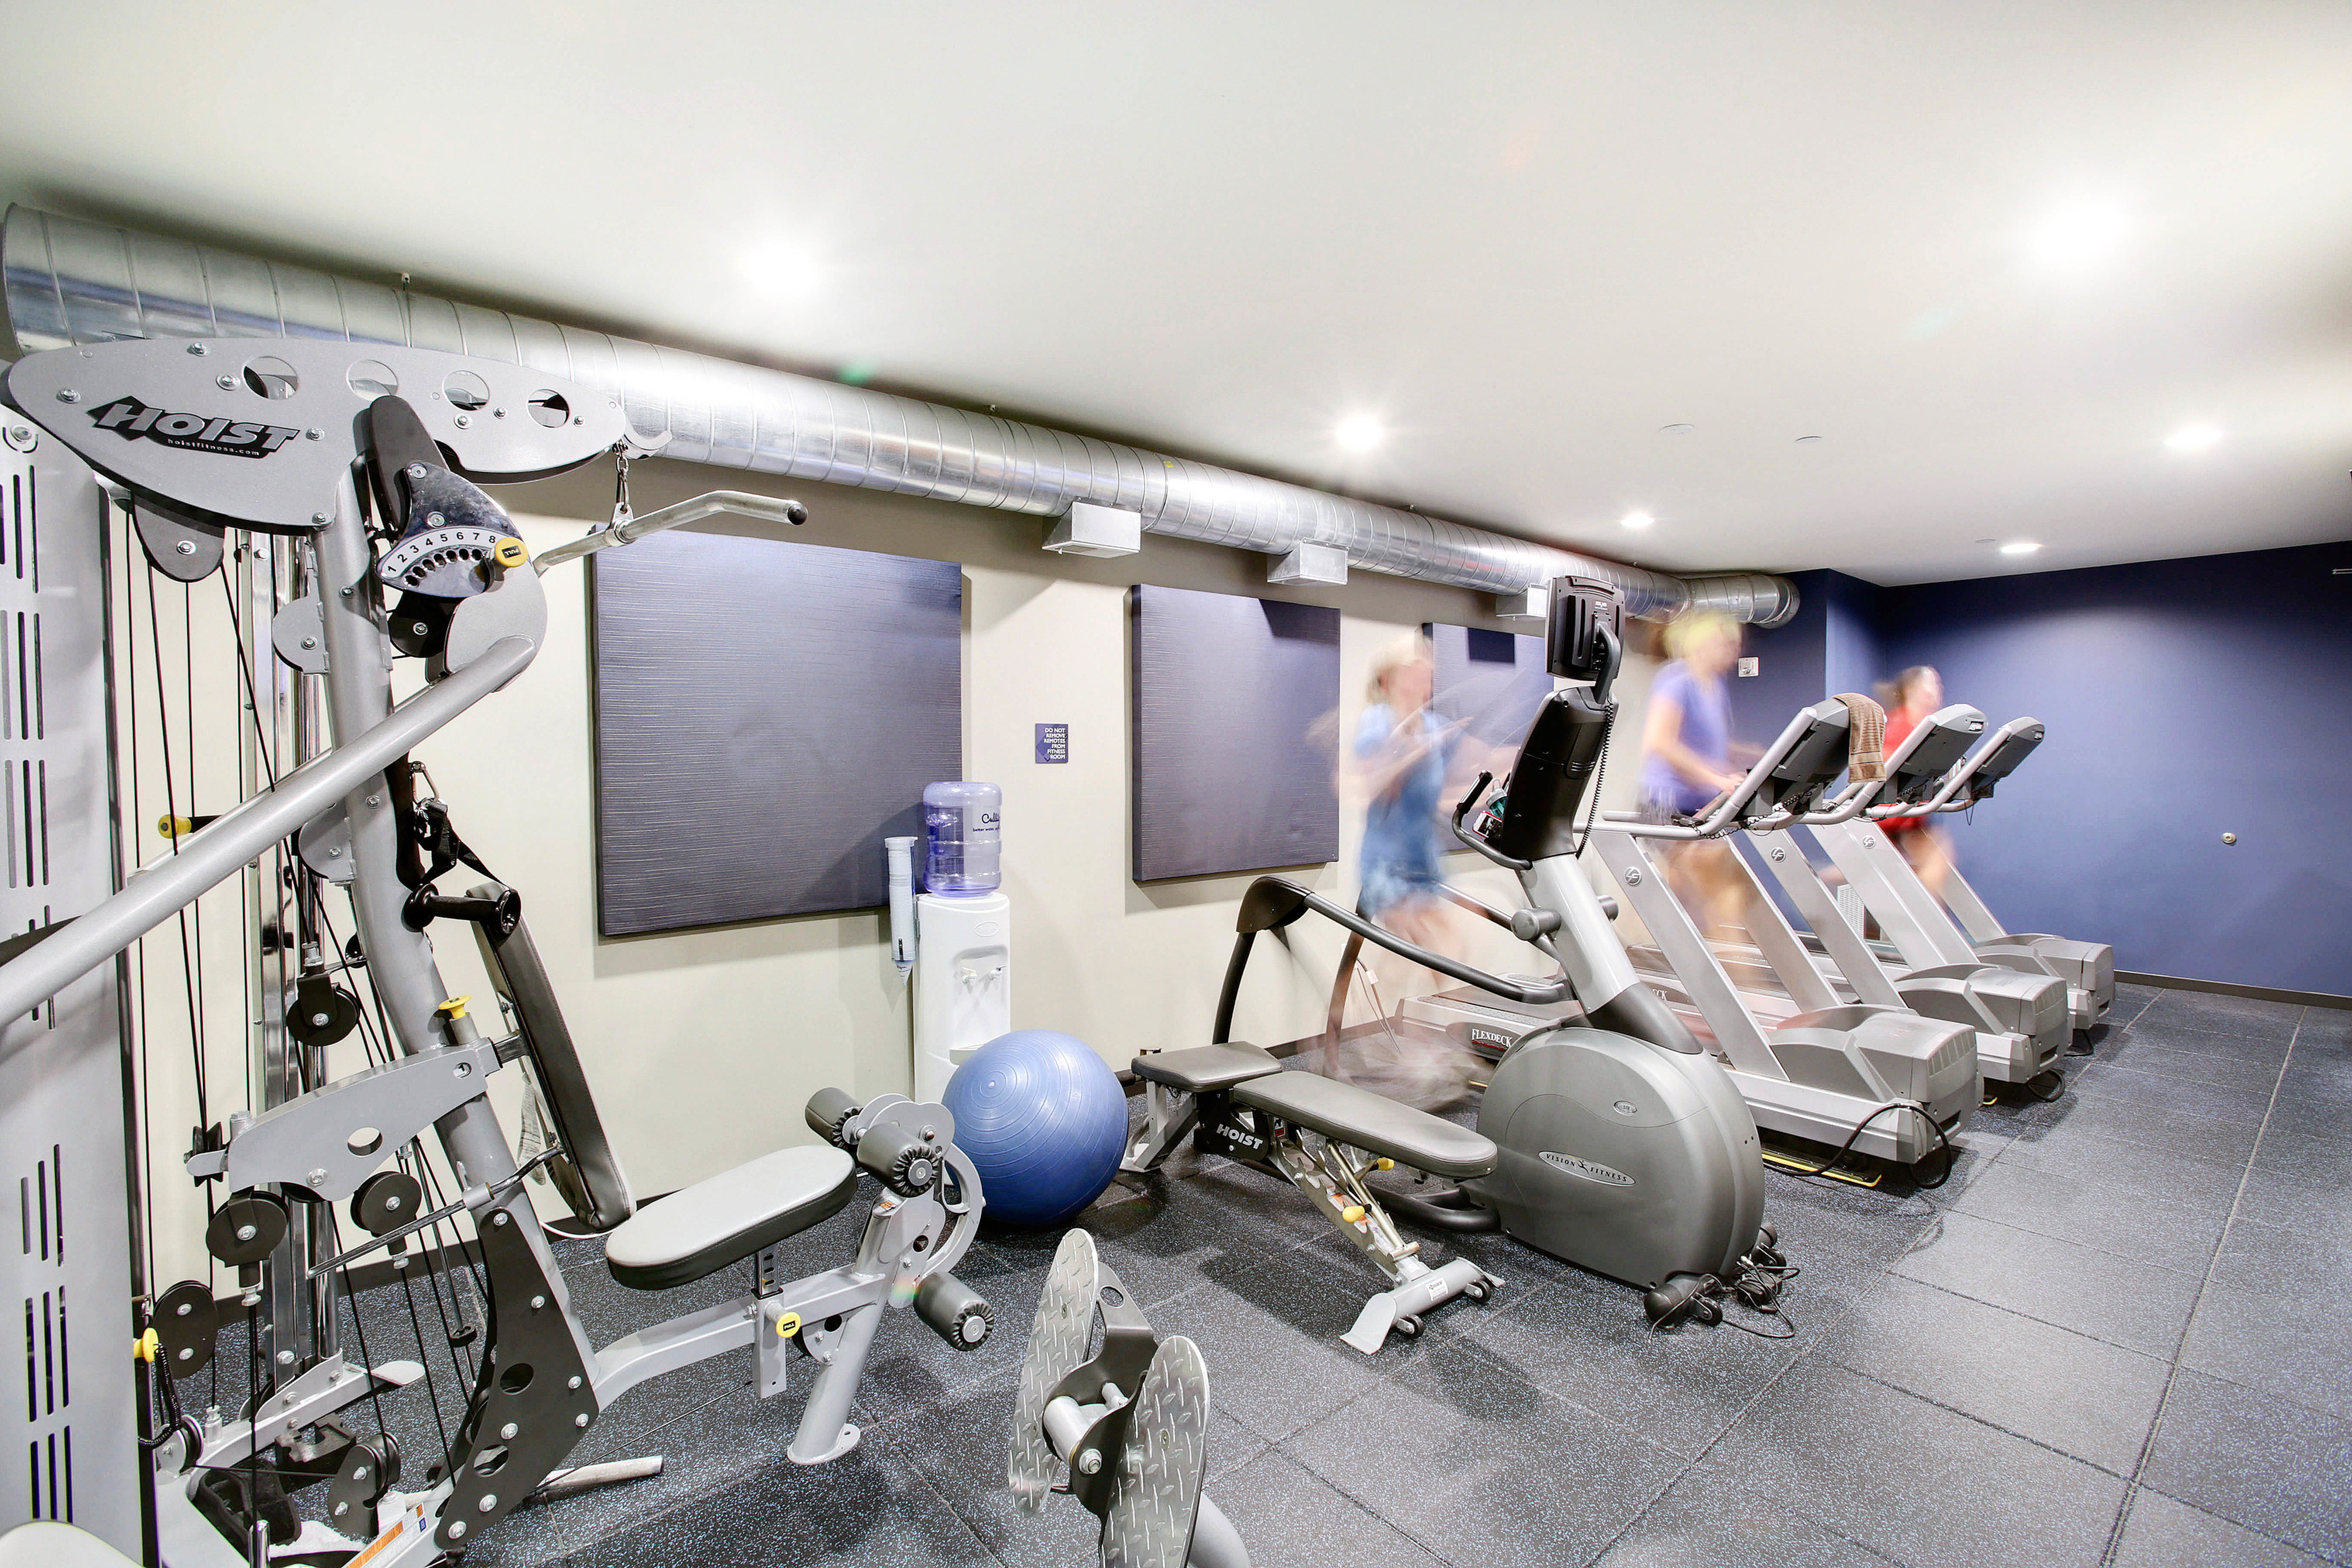 412 Lofts Apartments Lifestyle - 24 Hour Fitness Gym